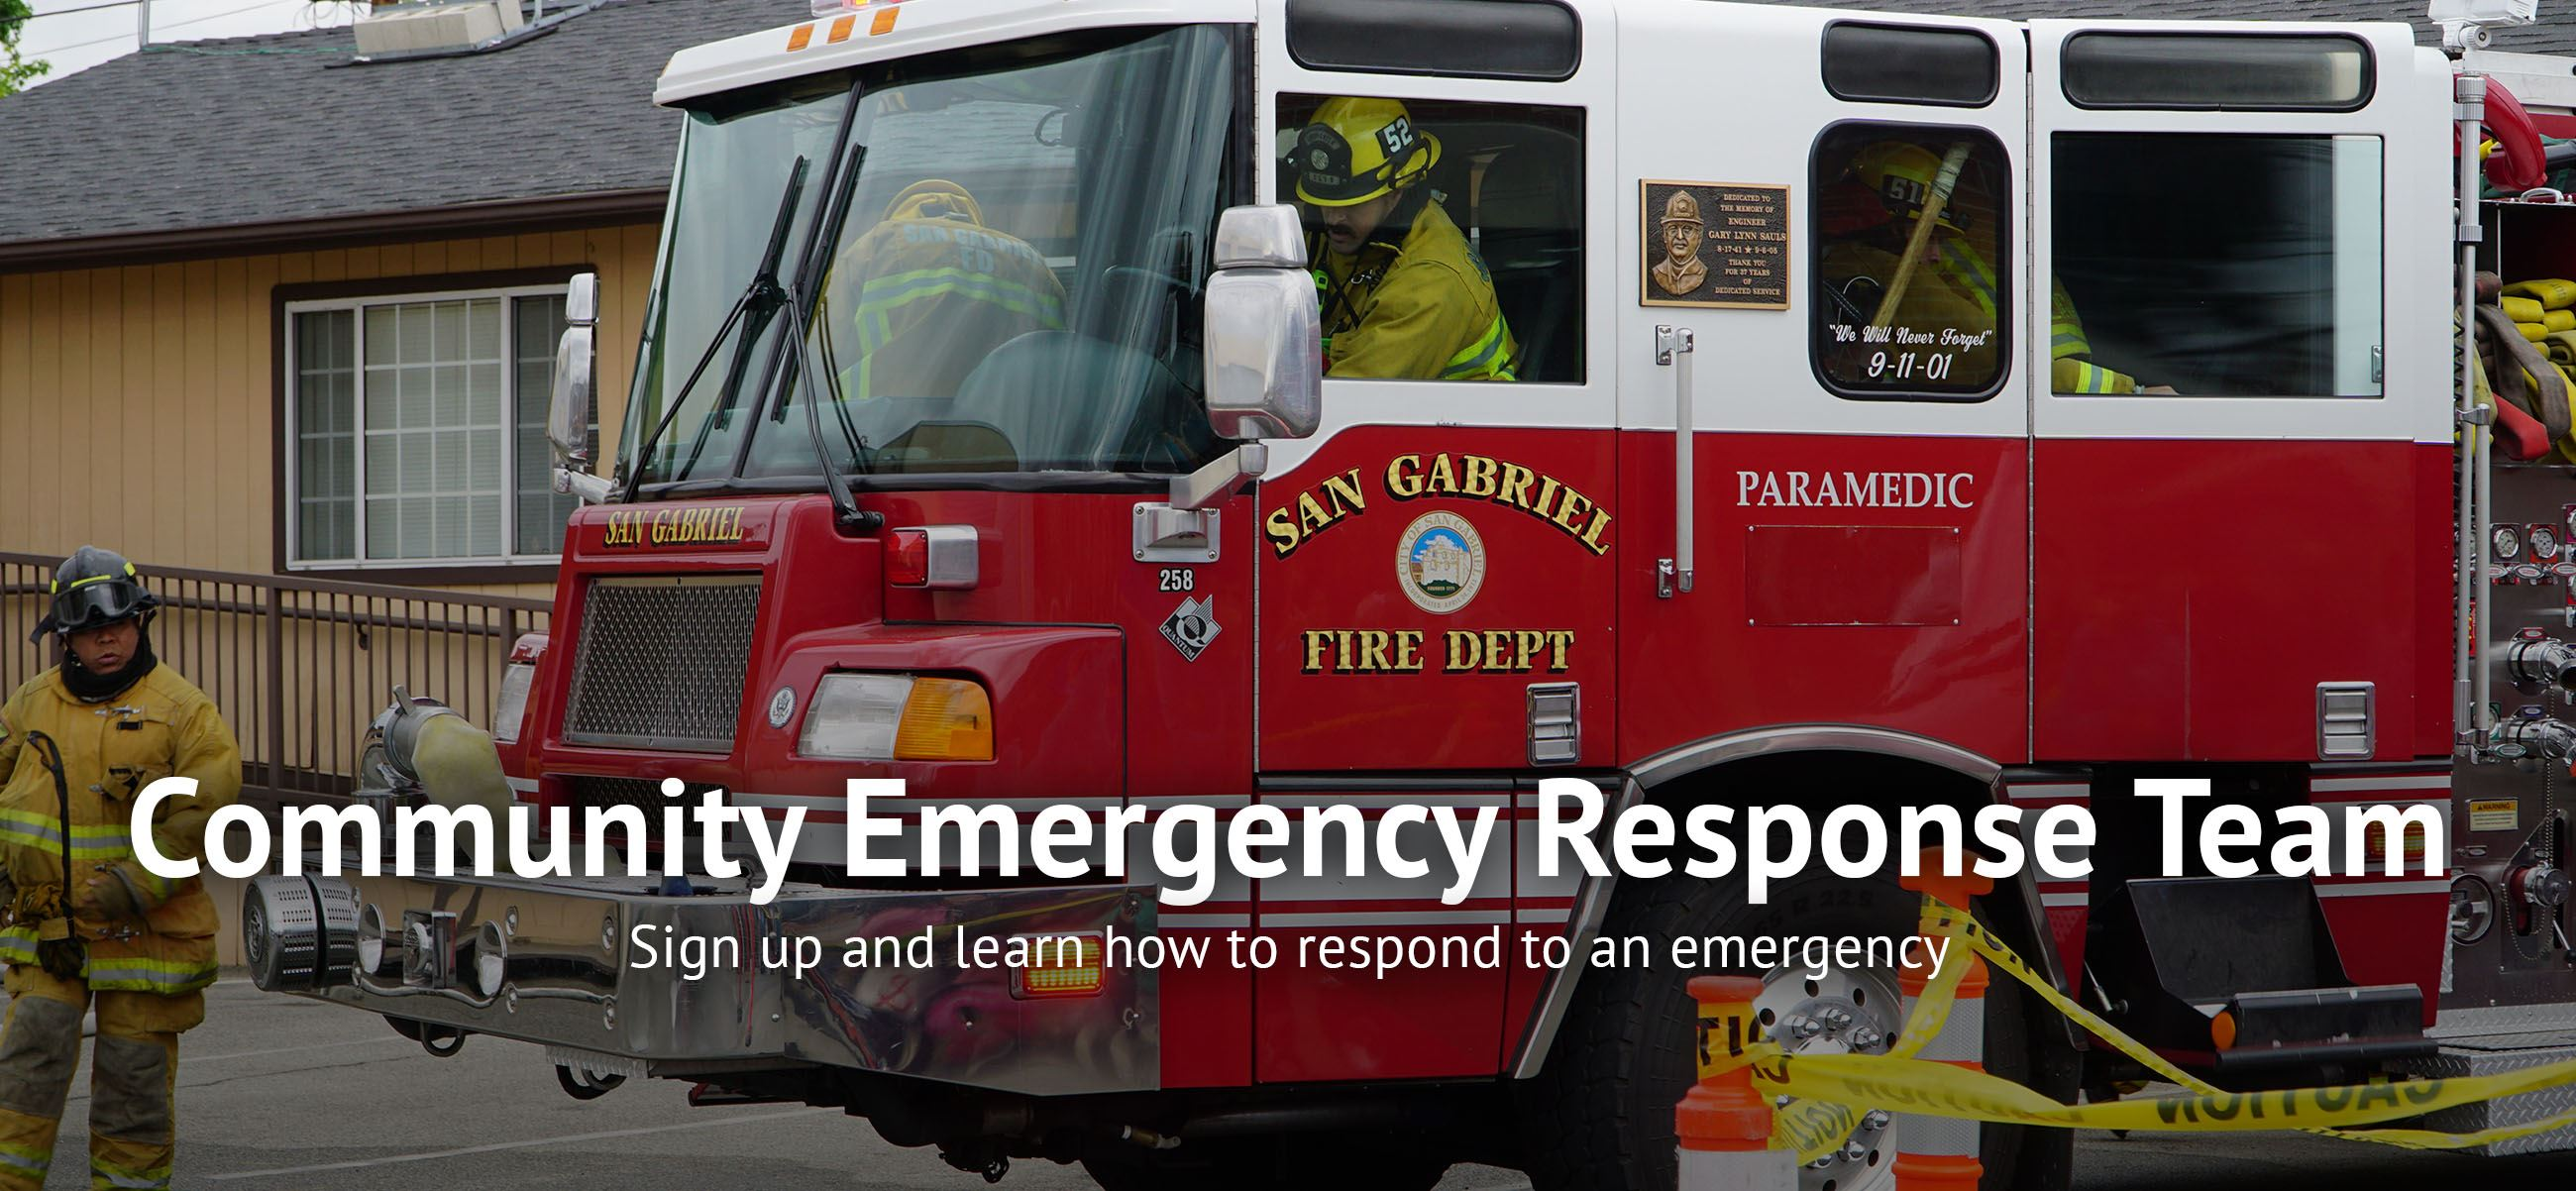 Sign up and learn how to respond to an emergency